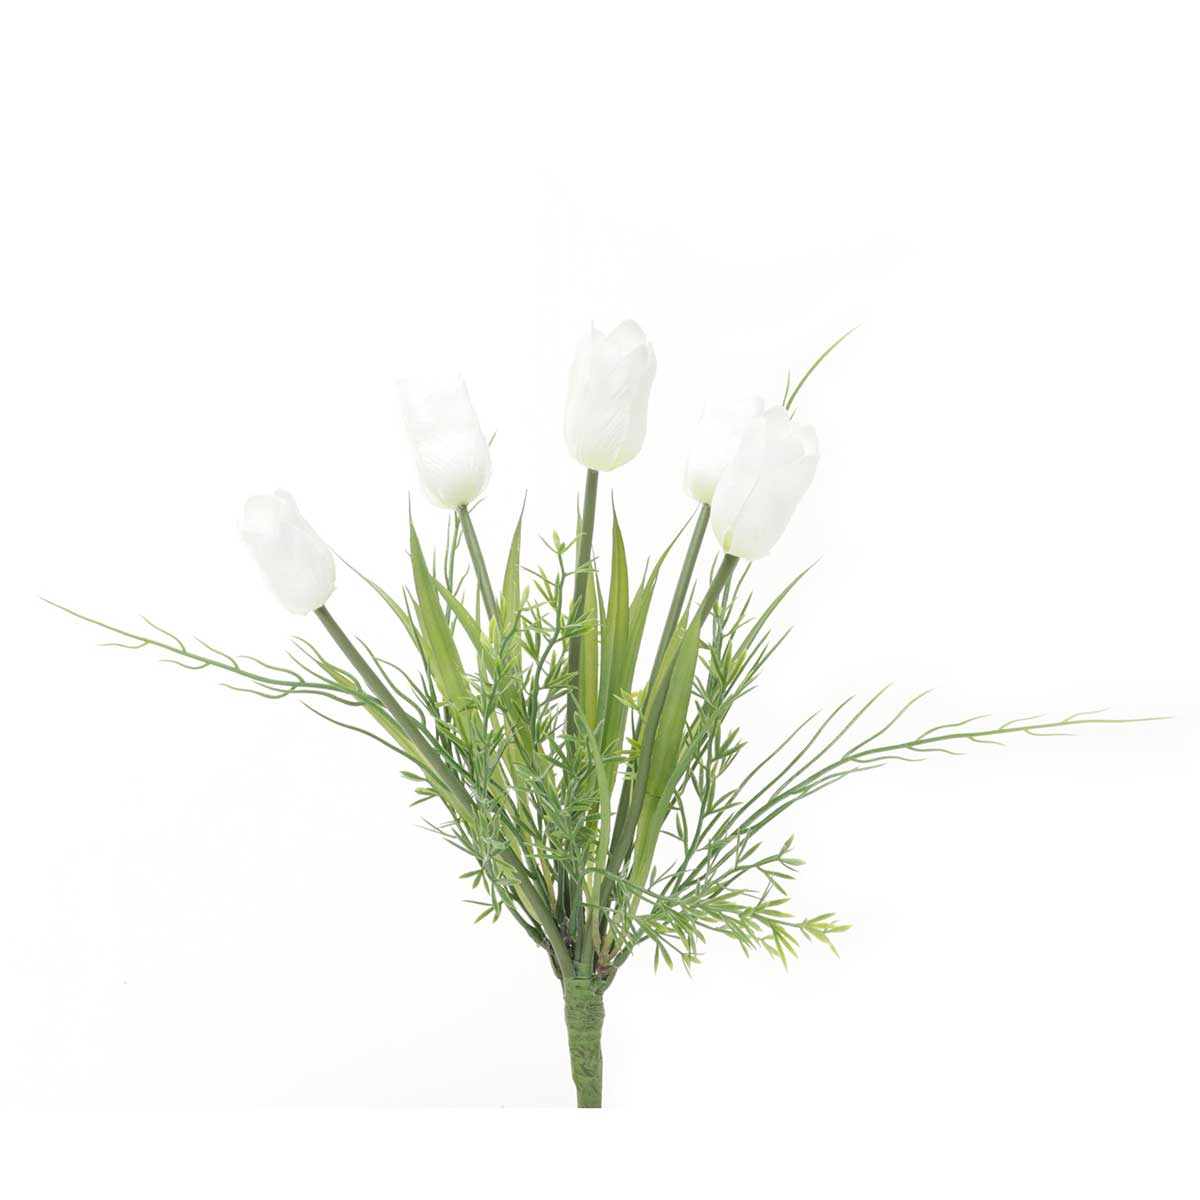 "Tulip Bush X5 with Grass 10""x12.5"" White"